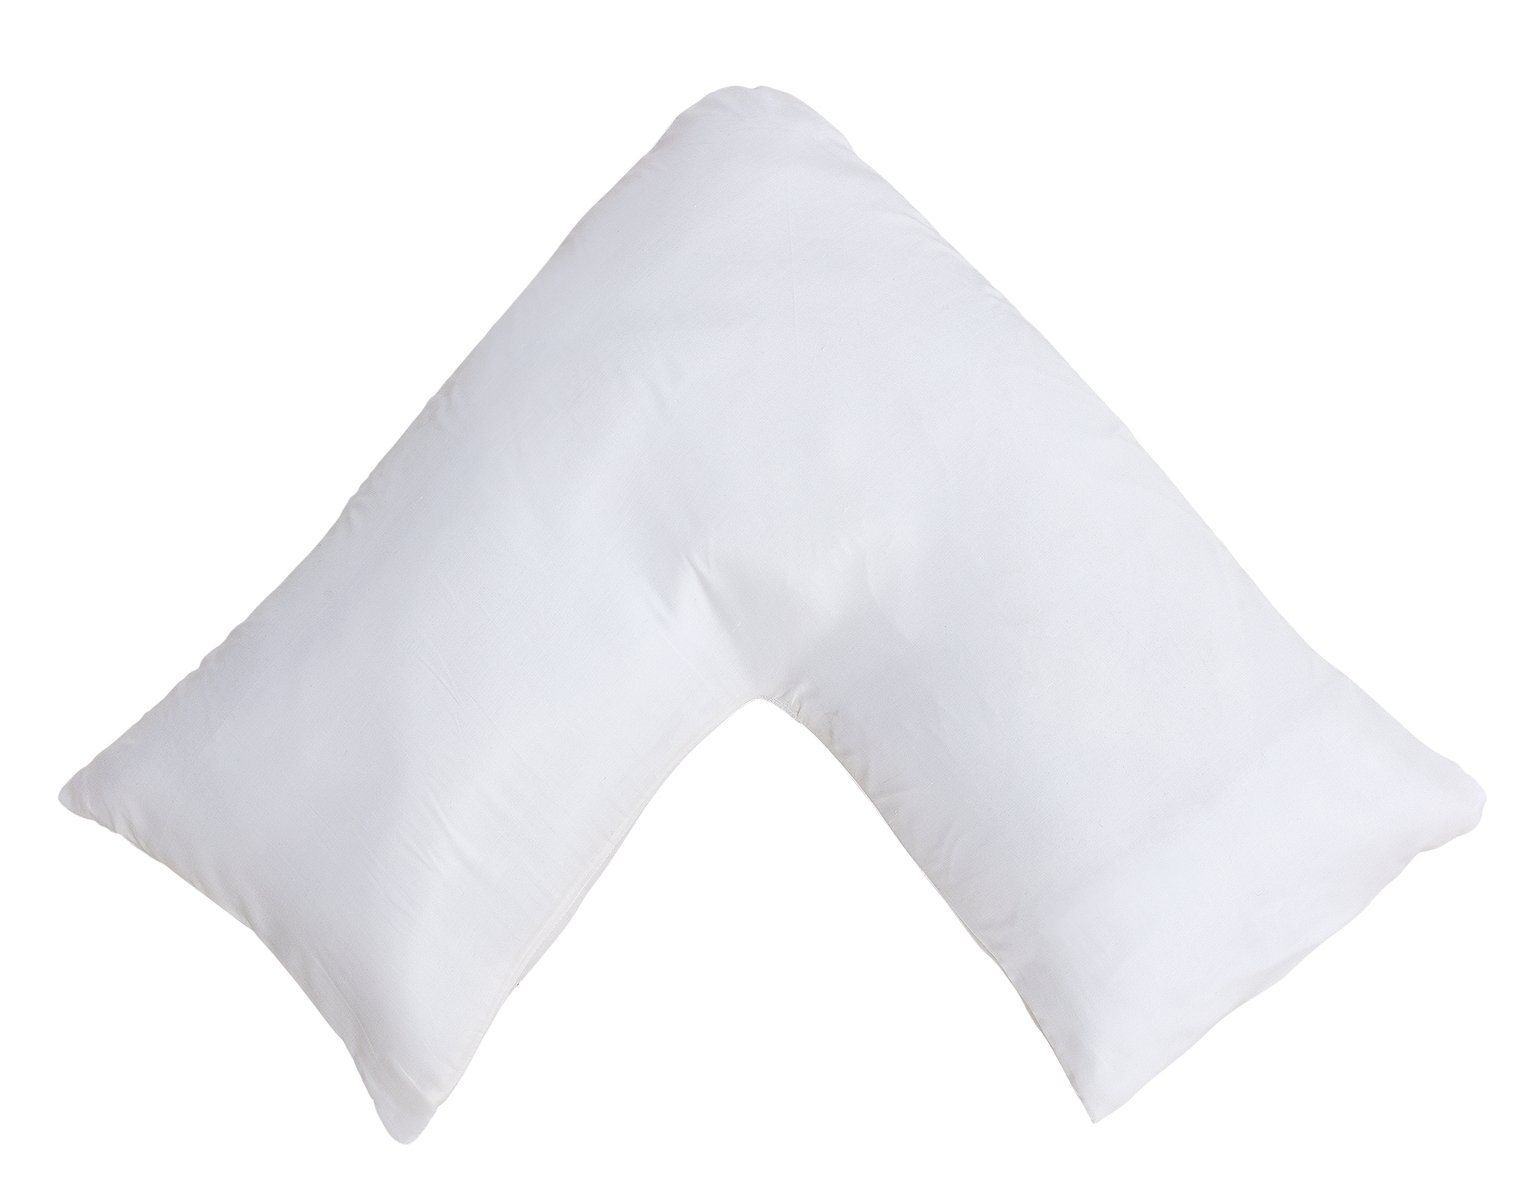 Argos Home - V-Shaped Memory Foam Pillow